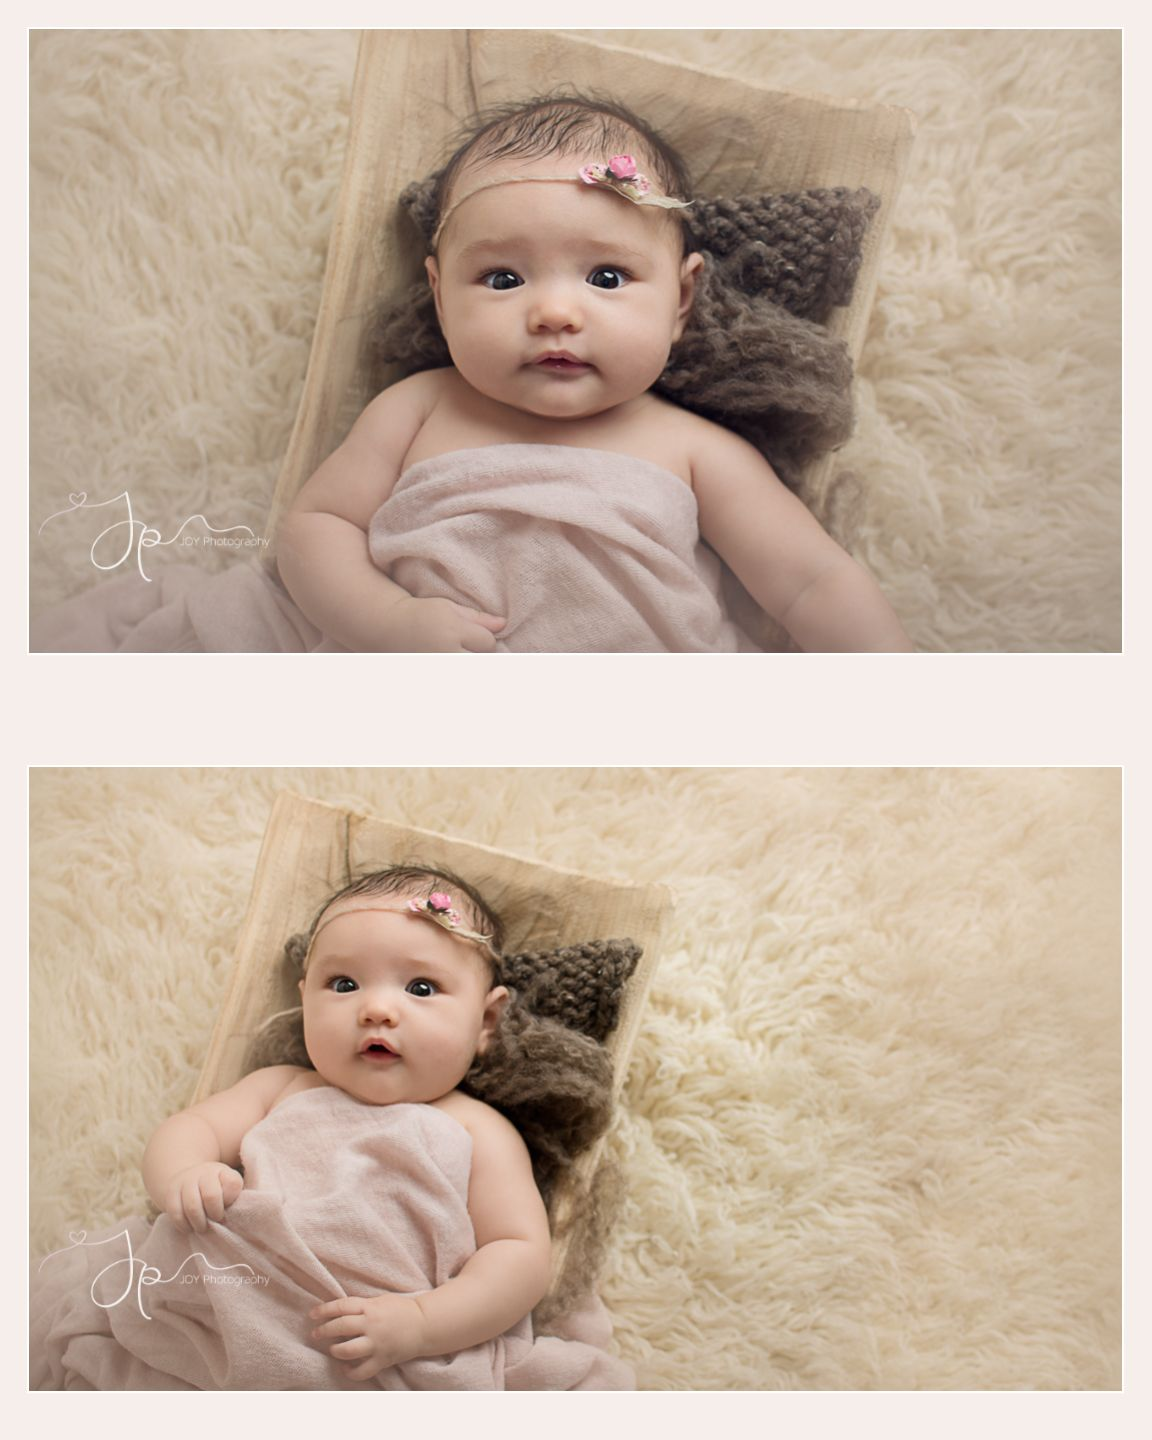 Nw ohio pregnancy newborn baby photographer baby girl portrait session at 2 months old would also work well for a 3 month old baby